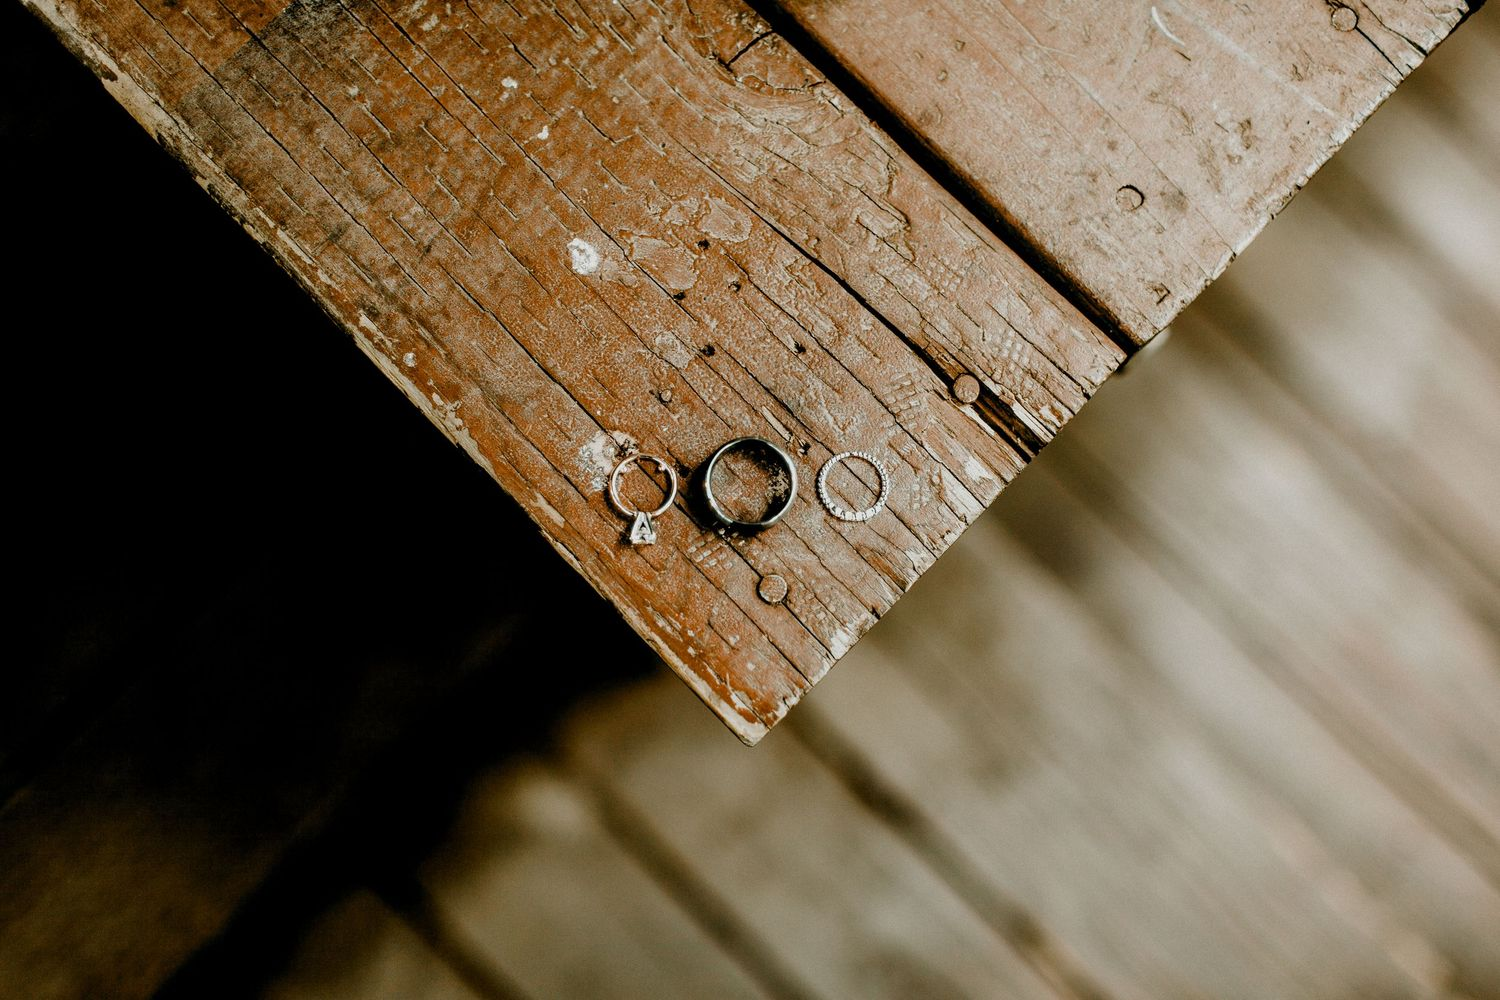 detailed image of wedding bands on a wooden bench at calamigos ranch